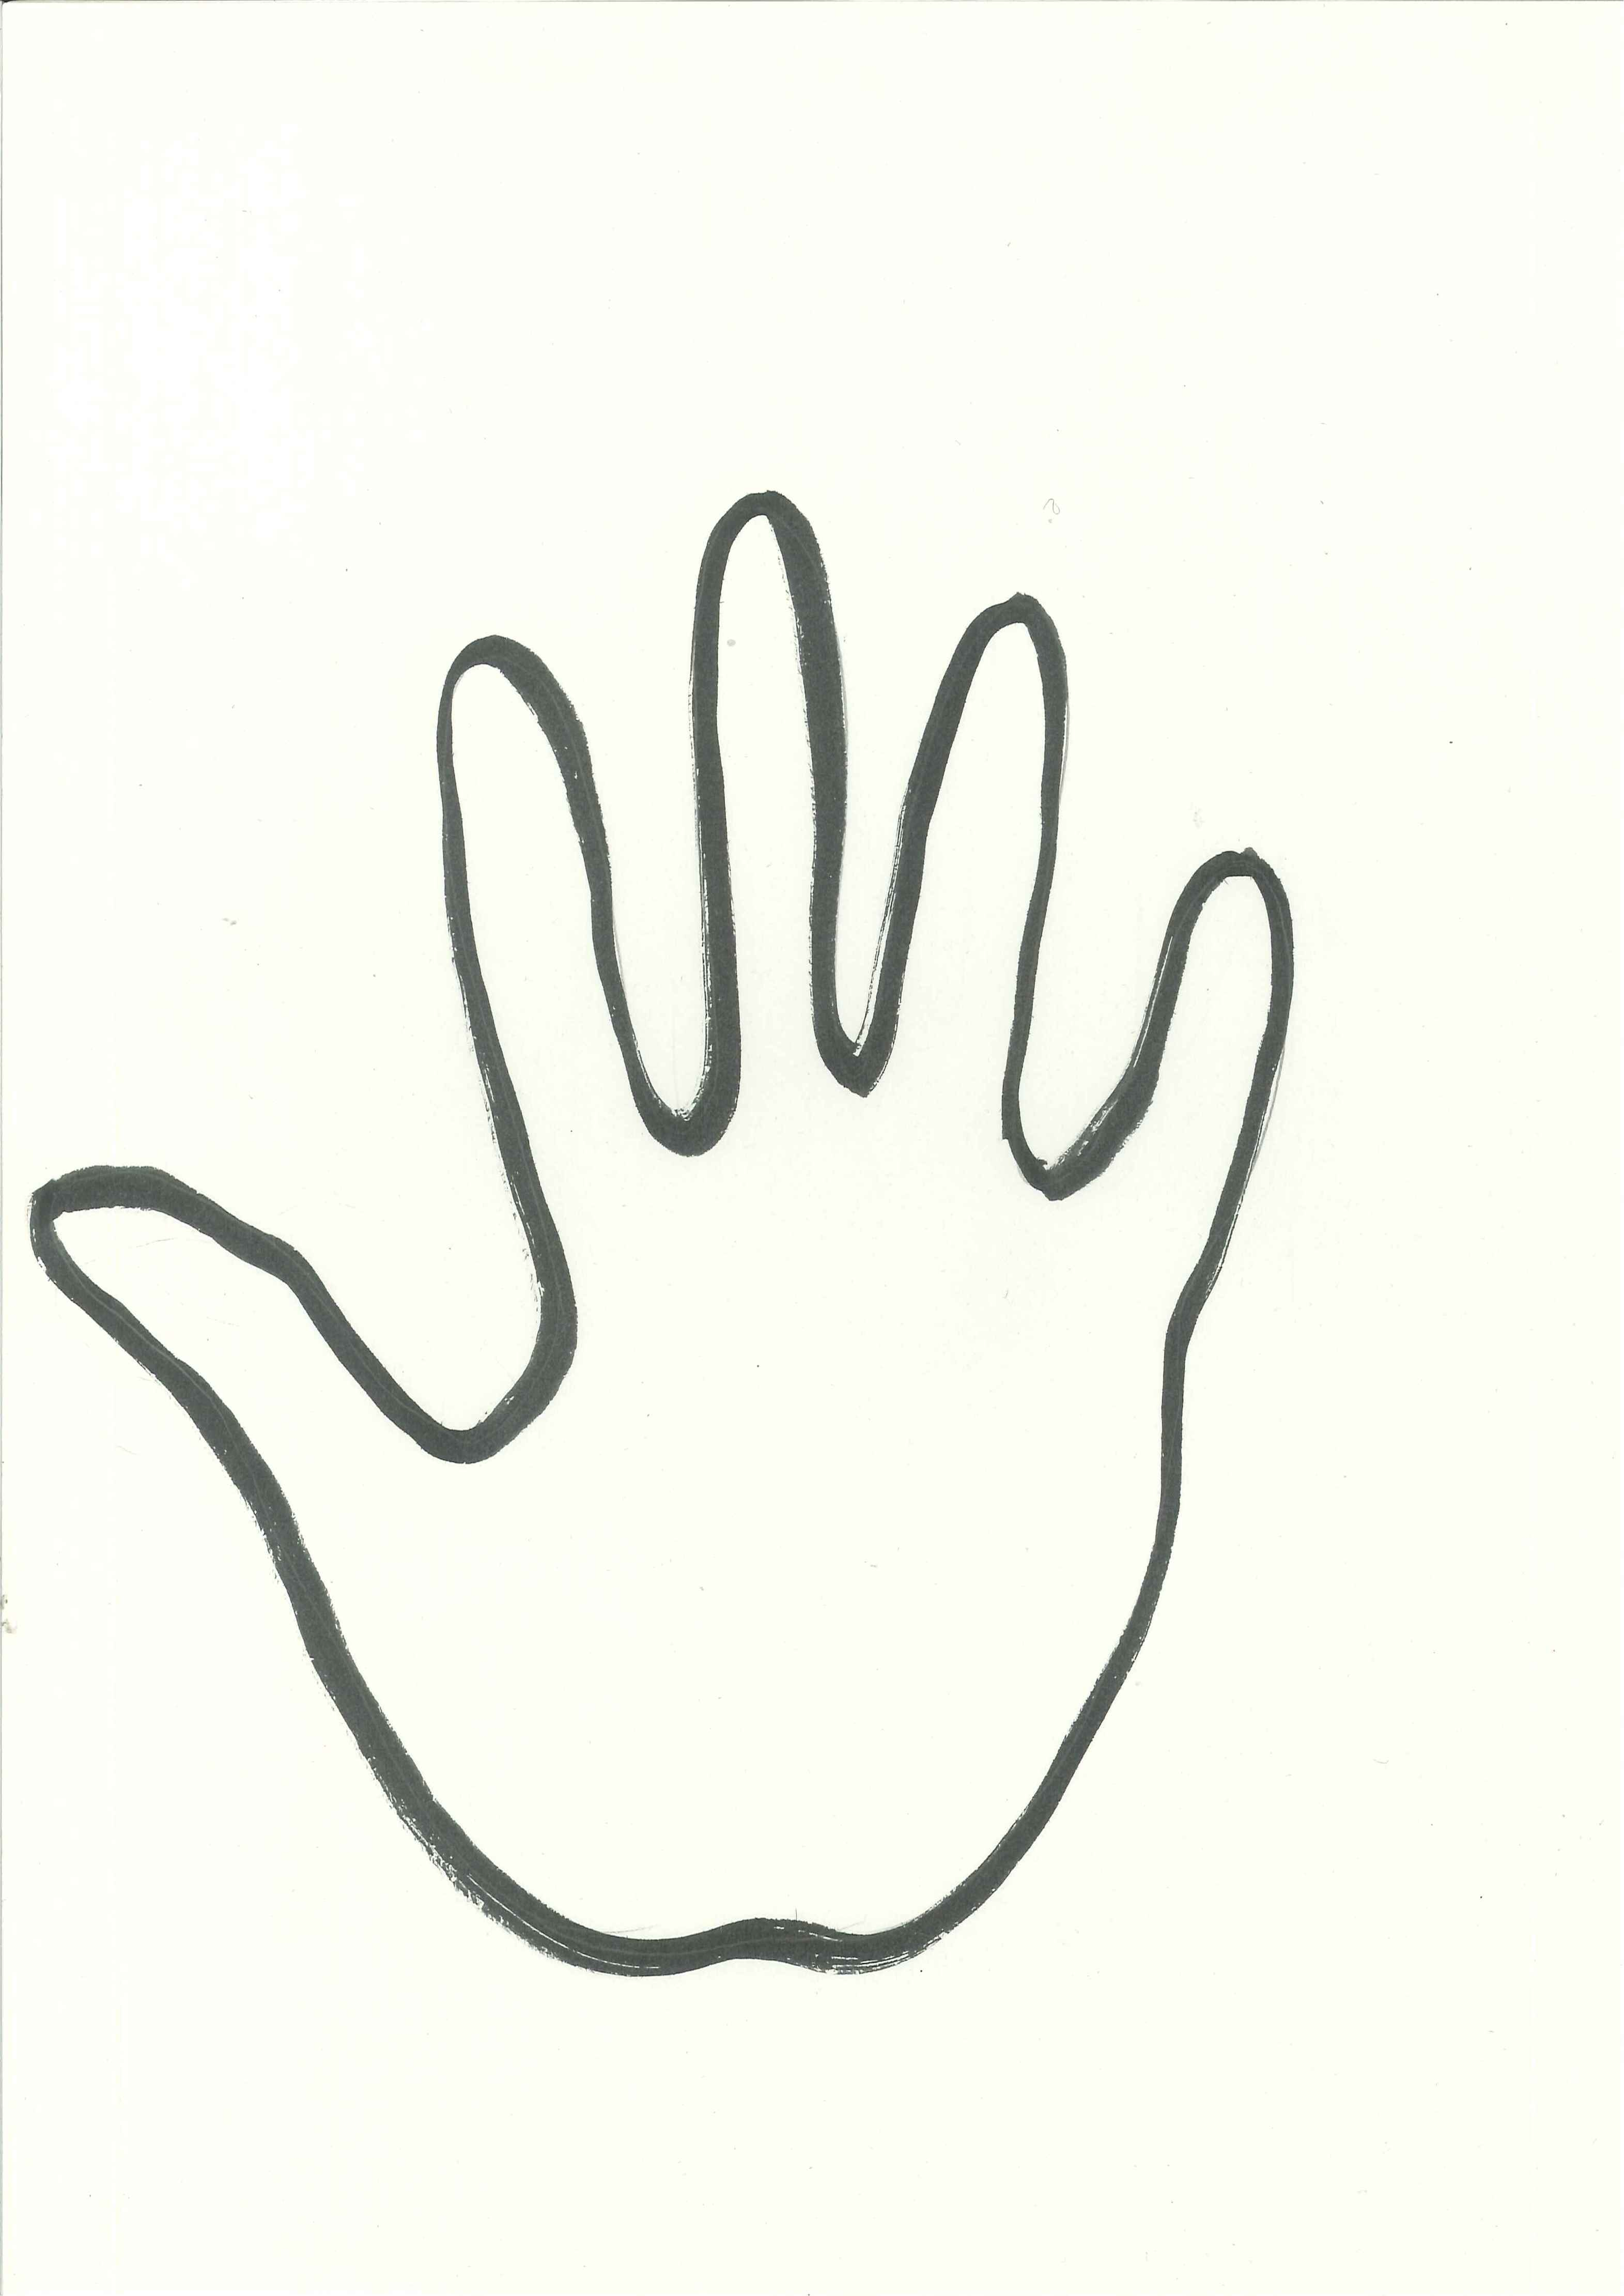 Hand Outline Left And Right Clipart Free-Hand outline left and right clipart free to use clip art resource-7